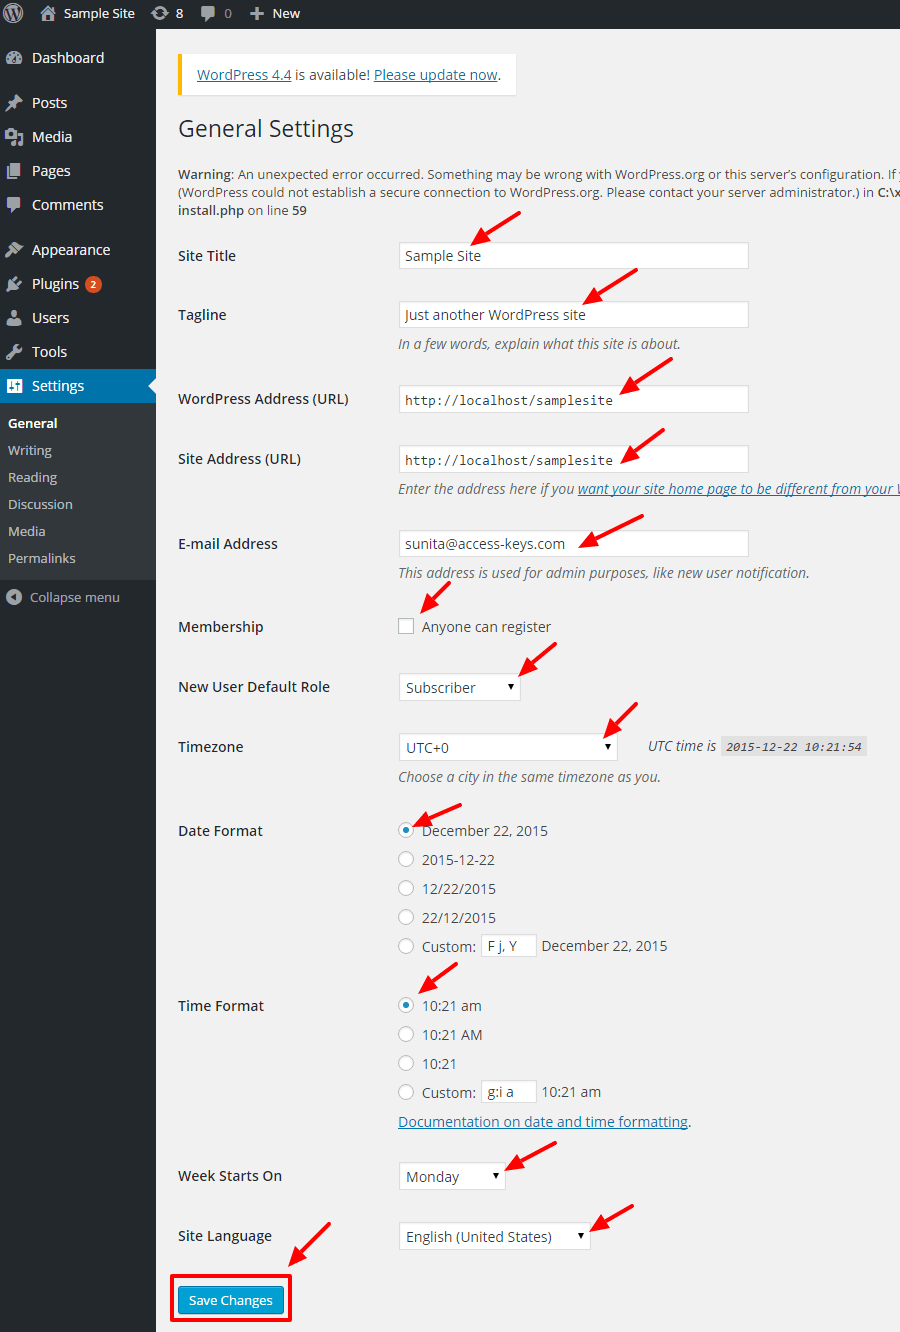 general settings - A complete guide to WordPress for beginners